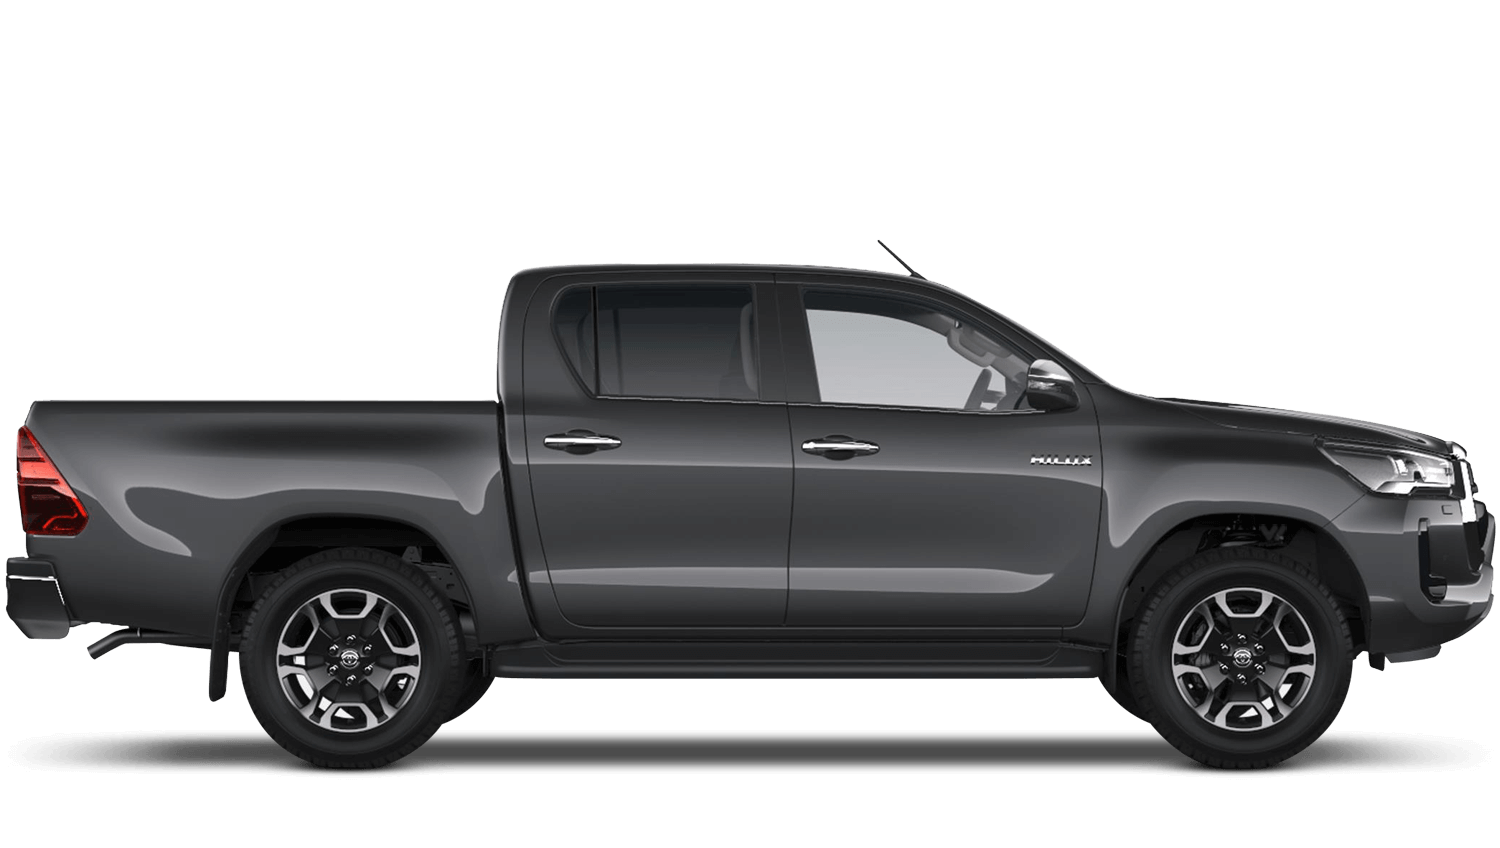 New Toyota Hilux Invincible Hire Purchase Offer